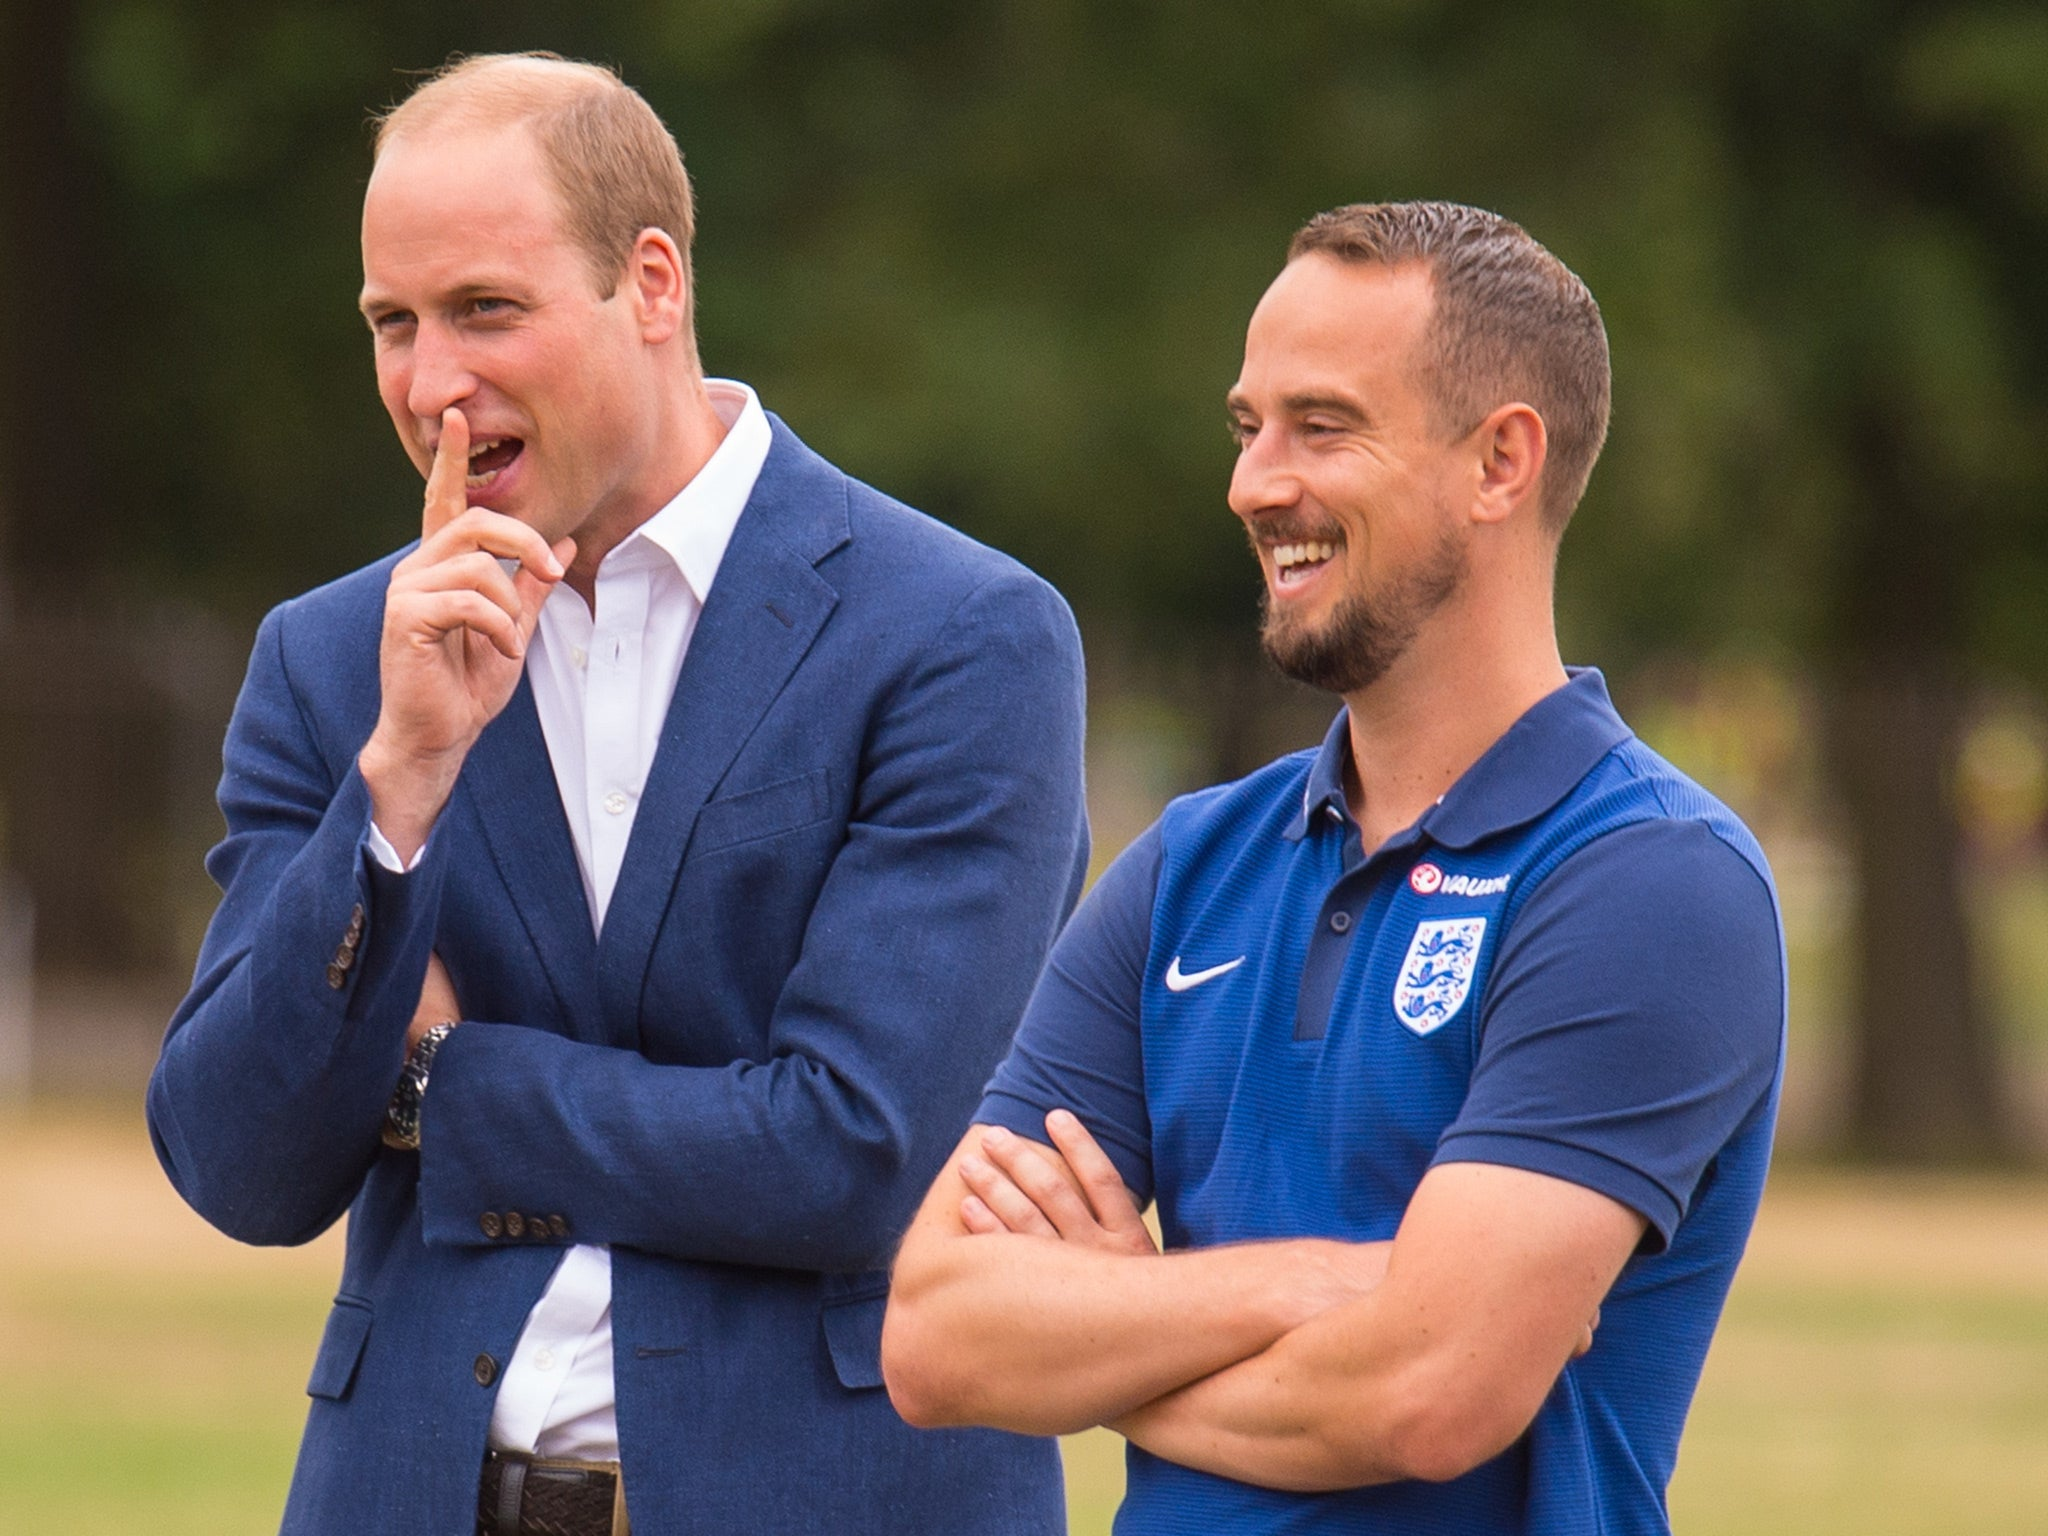 Women's Euro 2017: England and Scotland prepare to meet in Holland with differing expectations